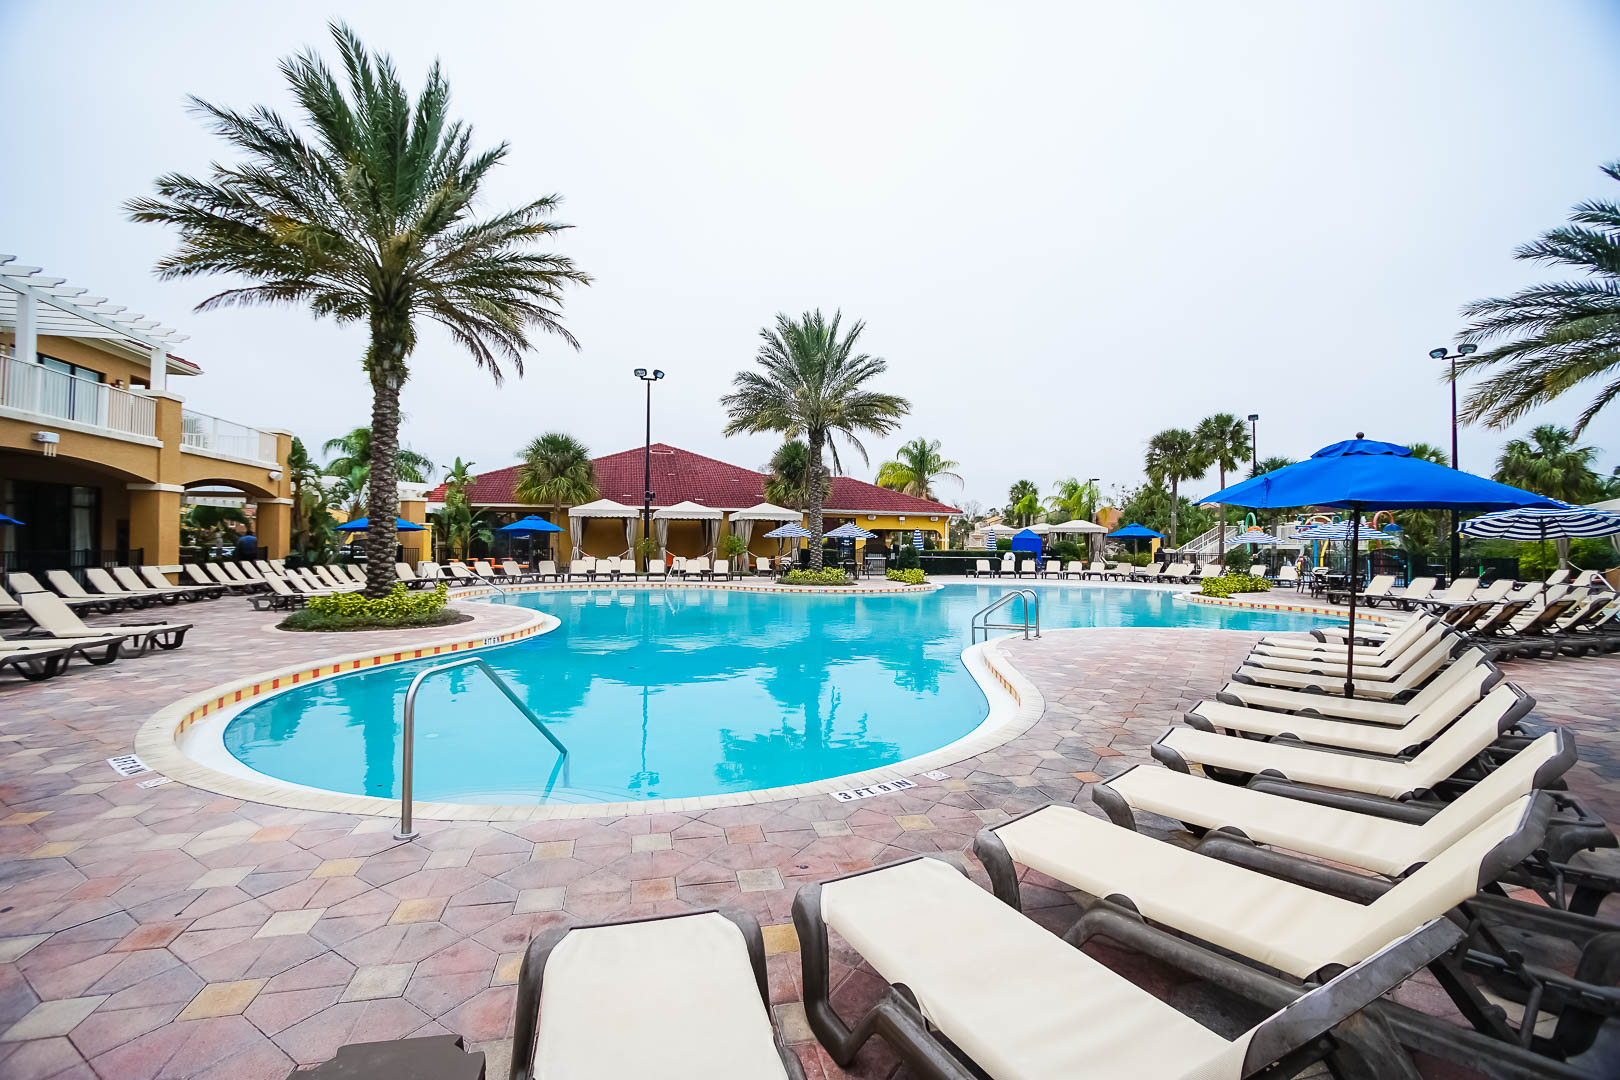 An expansive outdoor swimming pool at VRI's Fantasy World Resort in Florida.